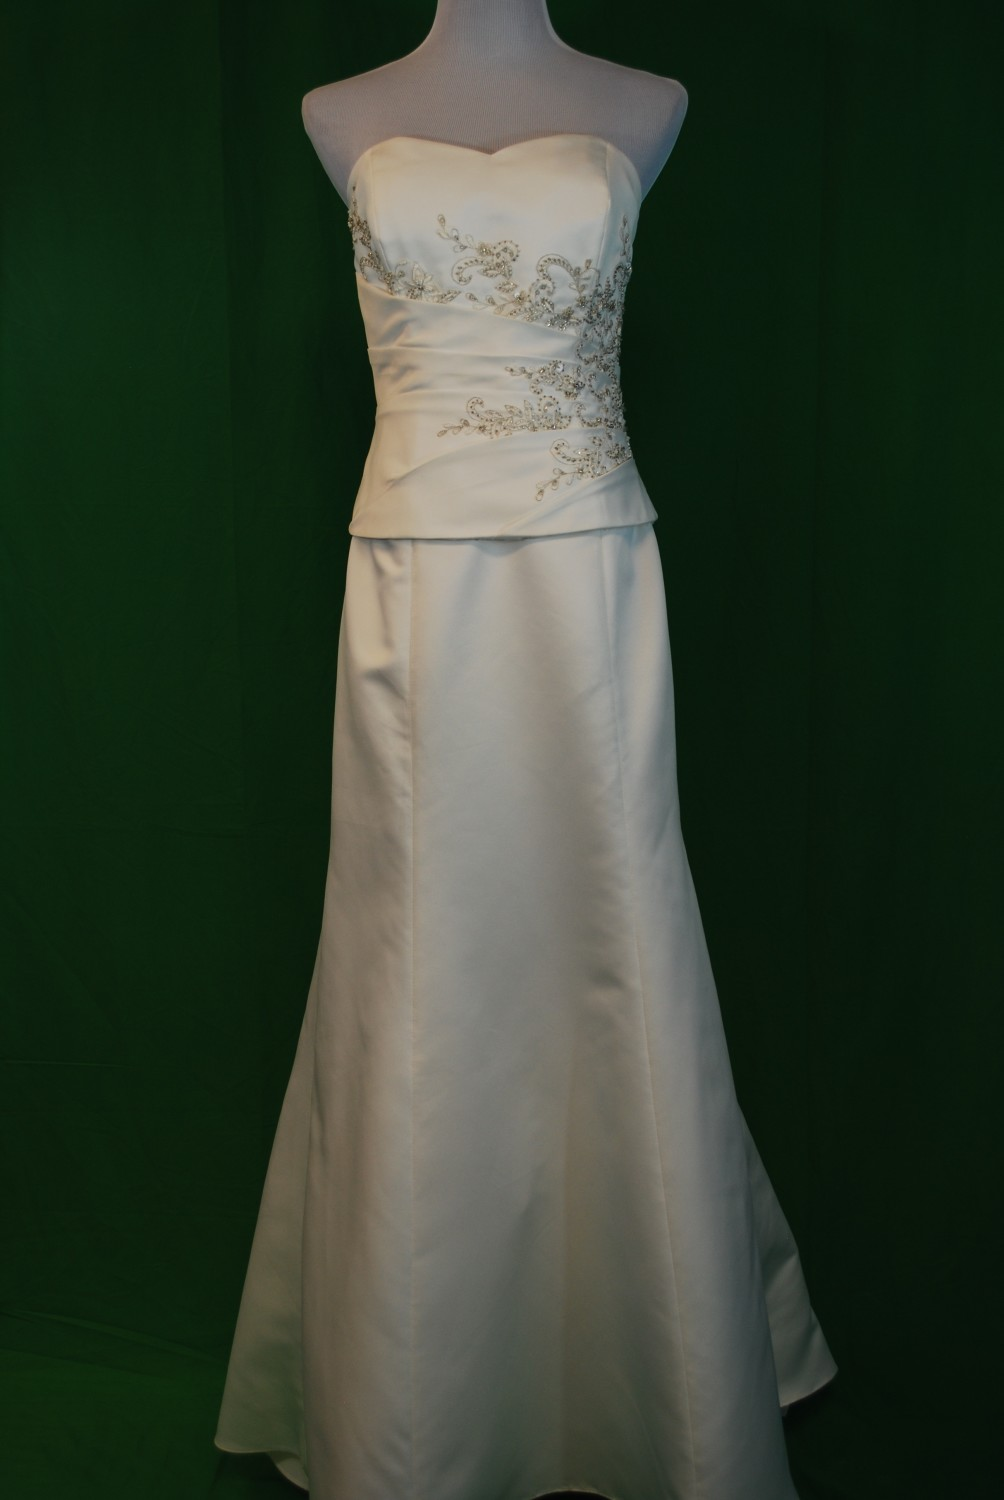 Eden Bridals – Original Retail: $500, CWS: $250